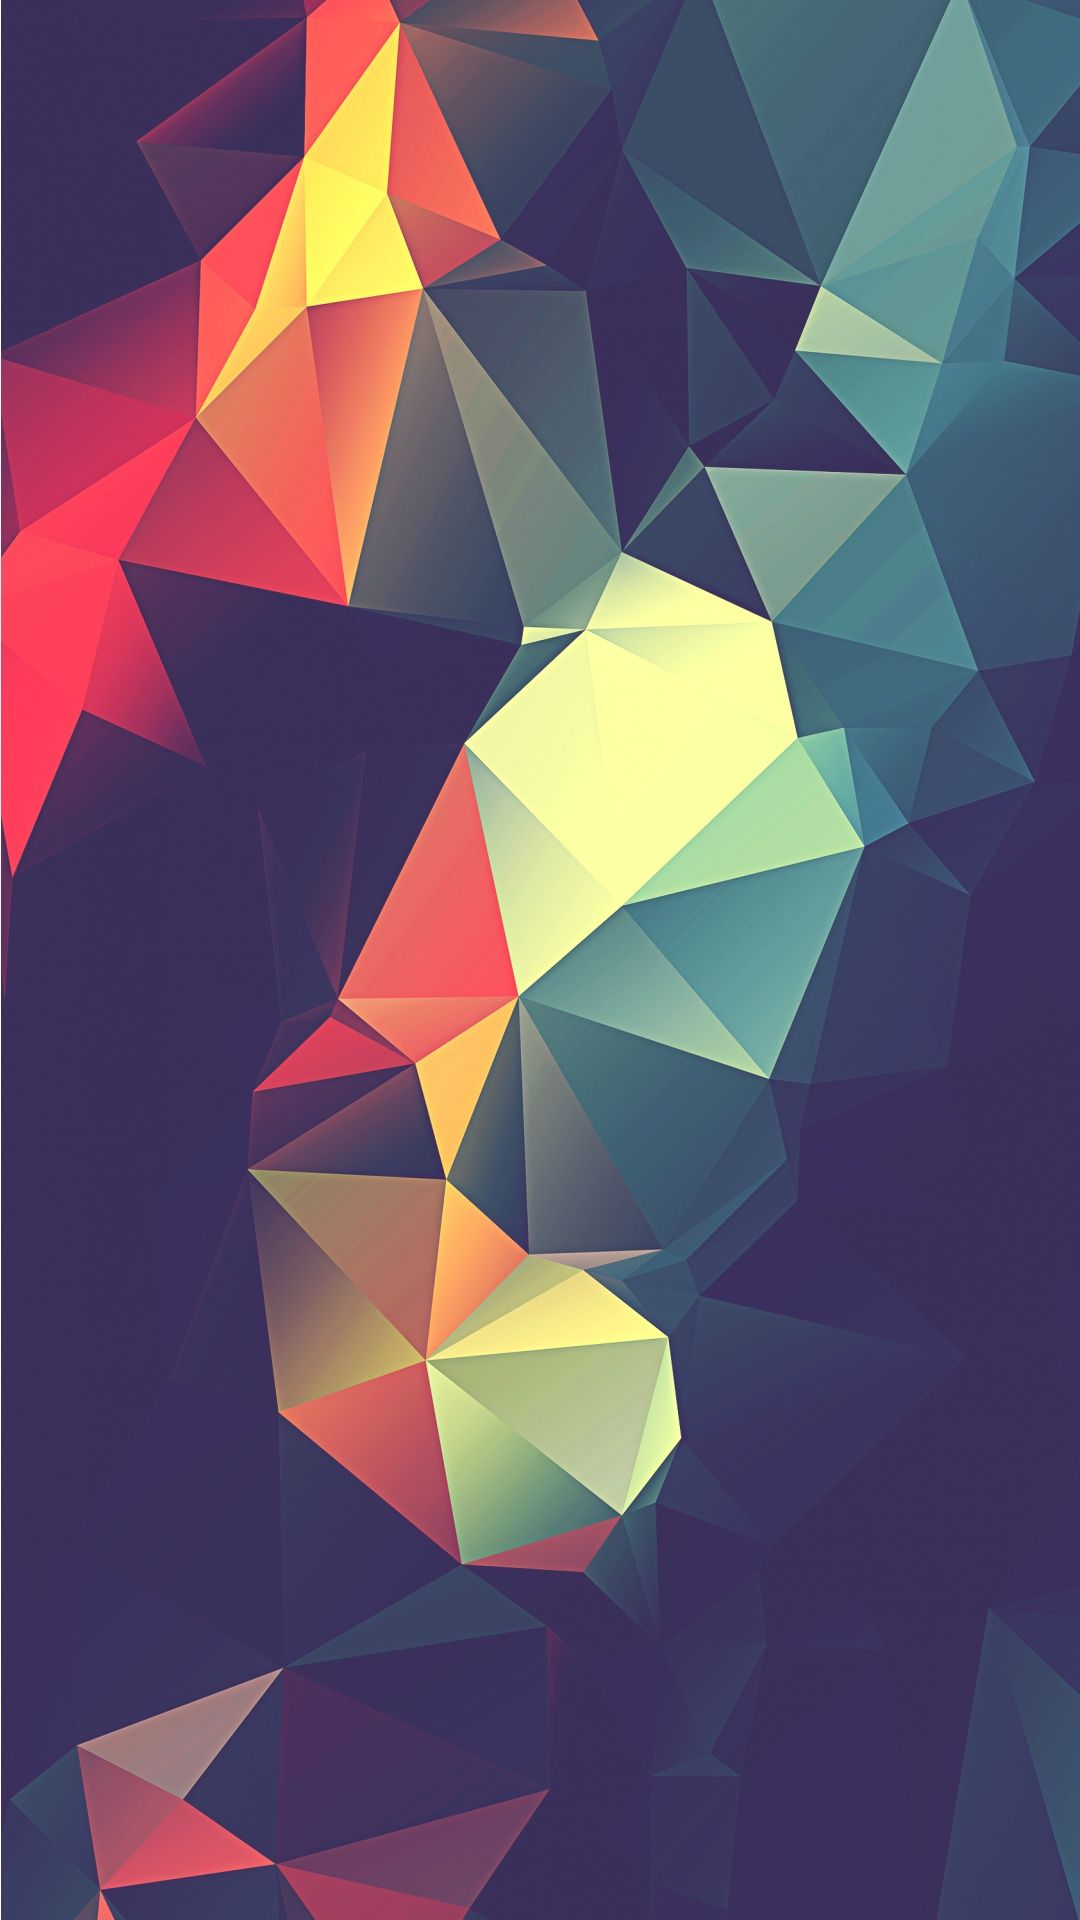 Colorful retro polygon abstract iphone wallpaper